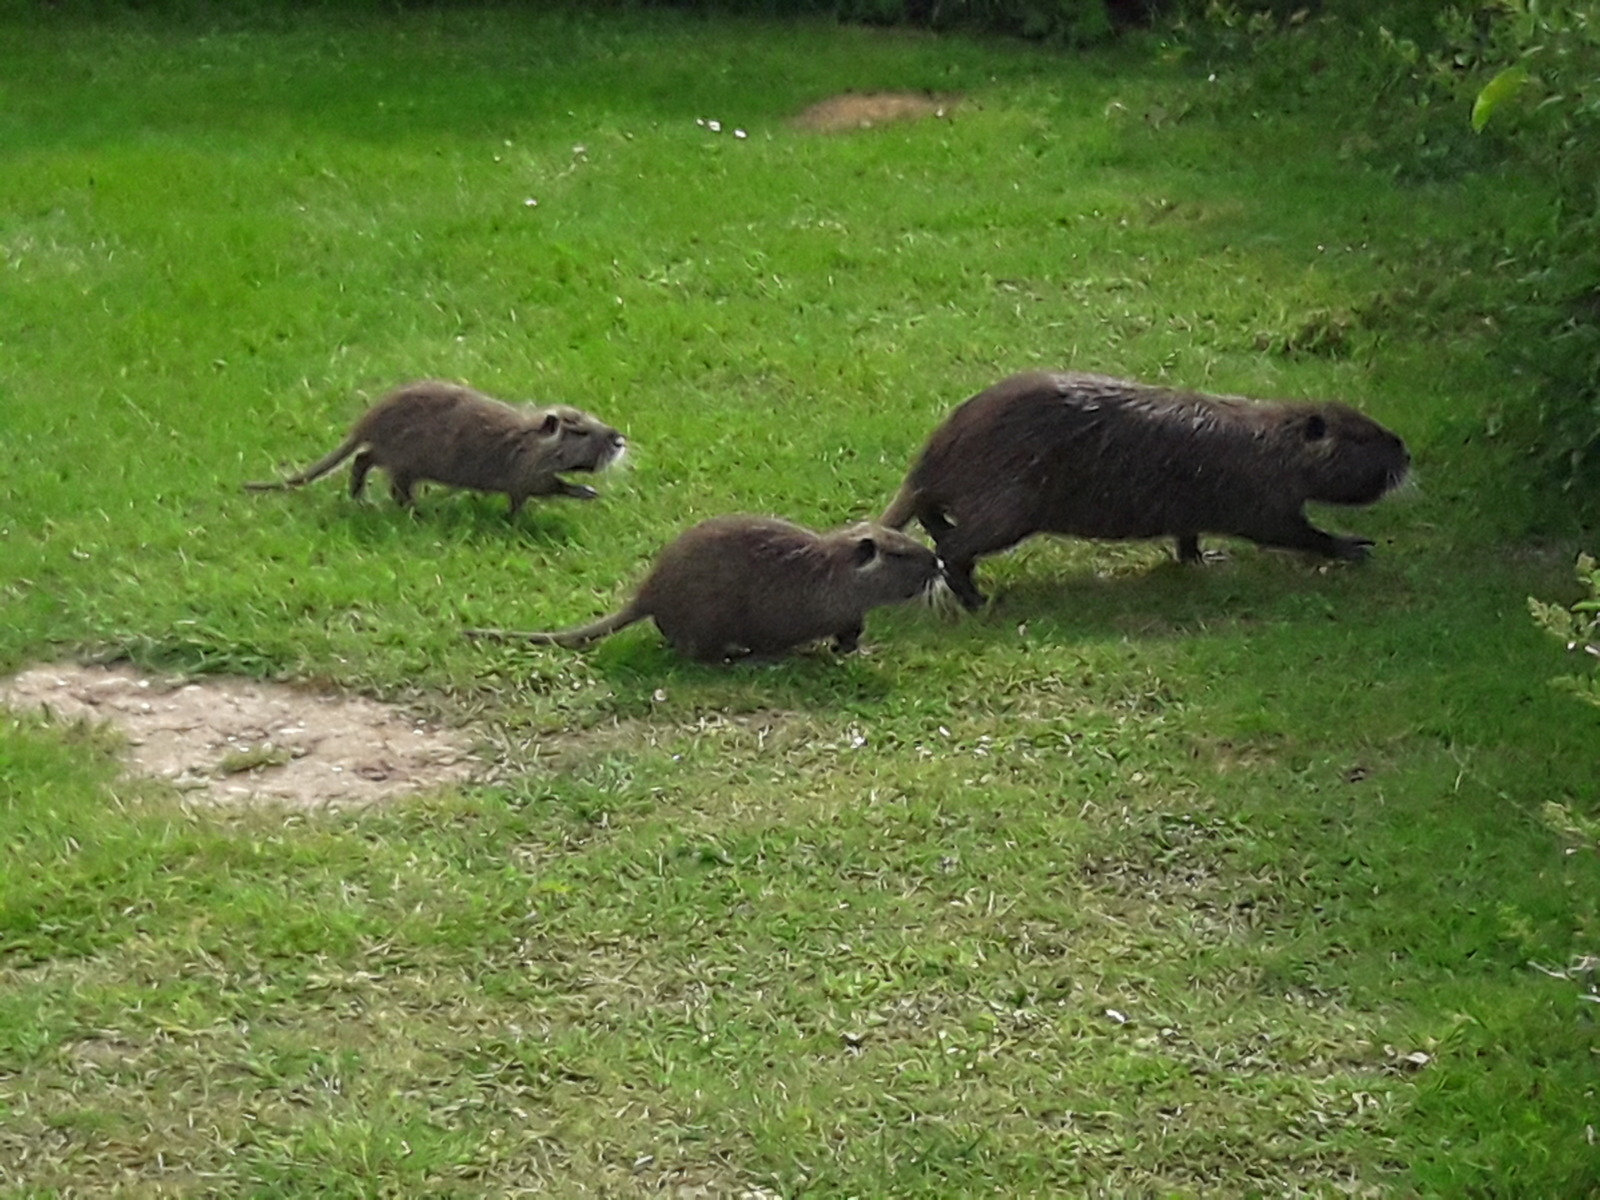 Grass otters